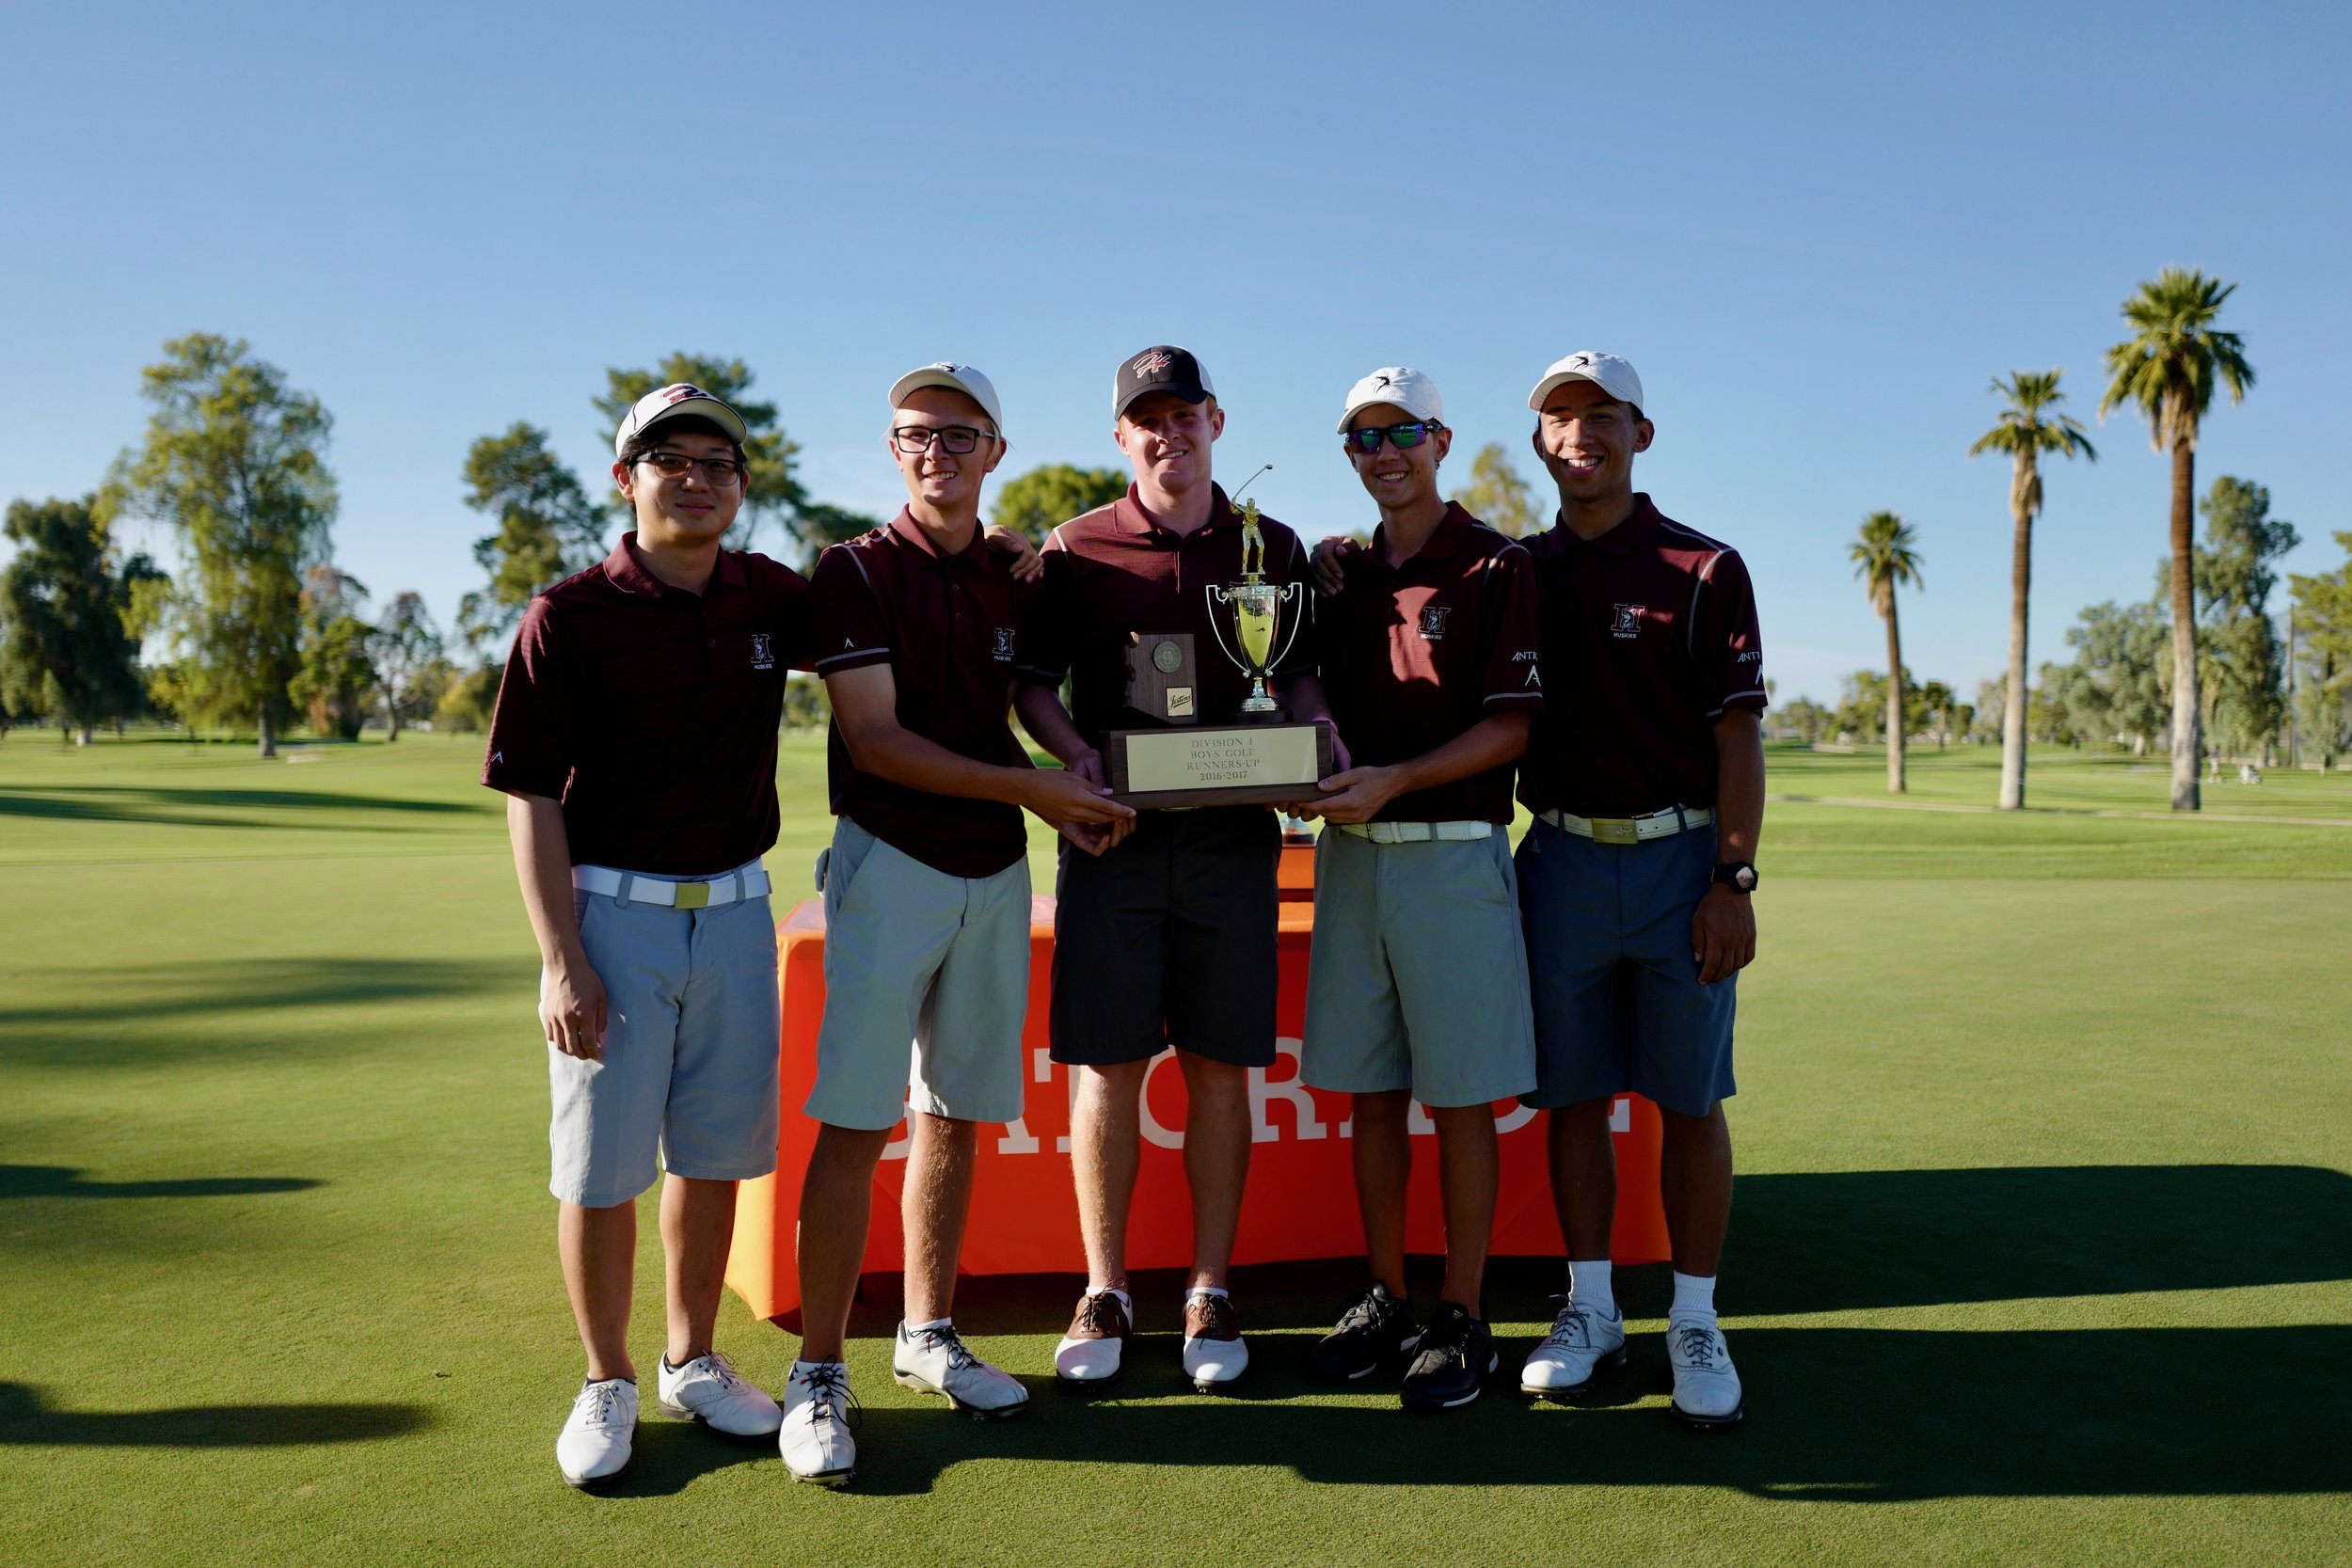 Hamilton Golf Team closed out the 2016 campaign with a runner-up finish at the 2016 Division-I State Championships. 2016 State Team (Left to Right: Trueman Park, Ryan Sanchez, Mason Andersen, Nic Hedman & Andrew Proctor)